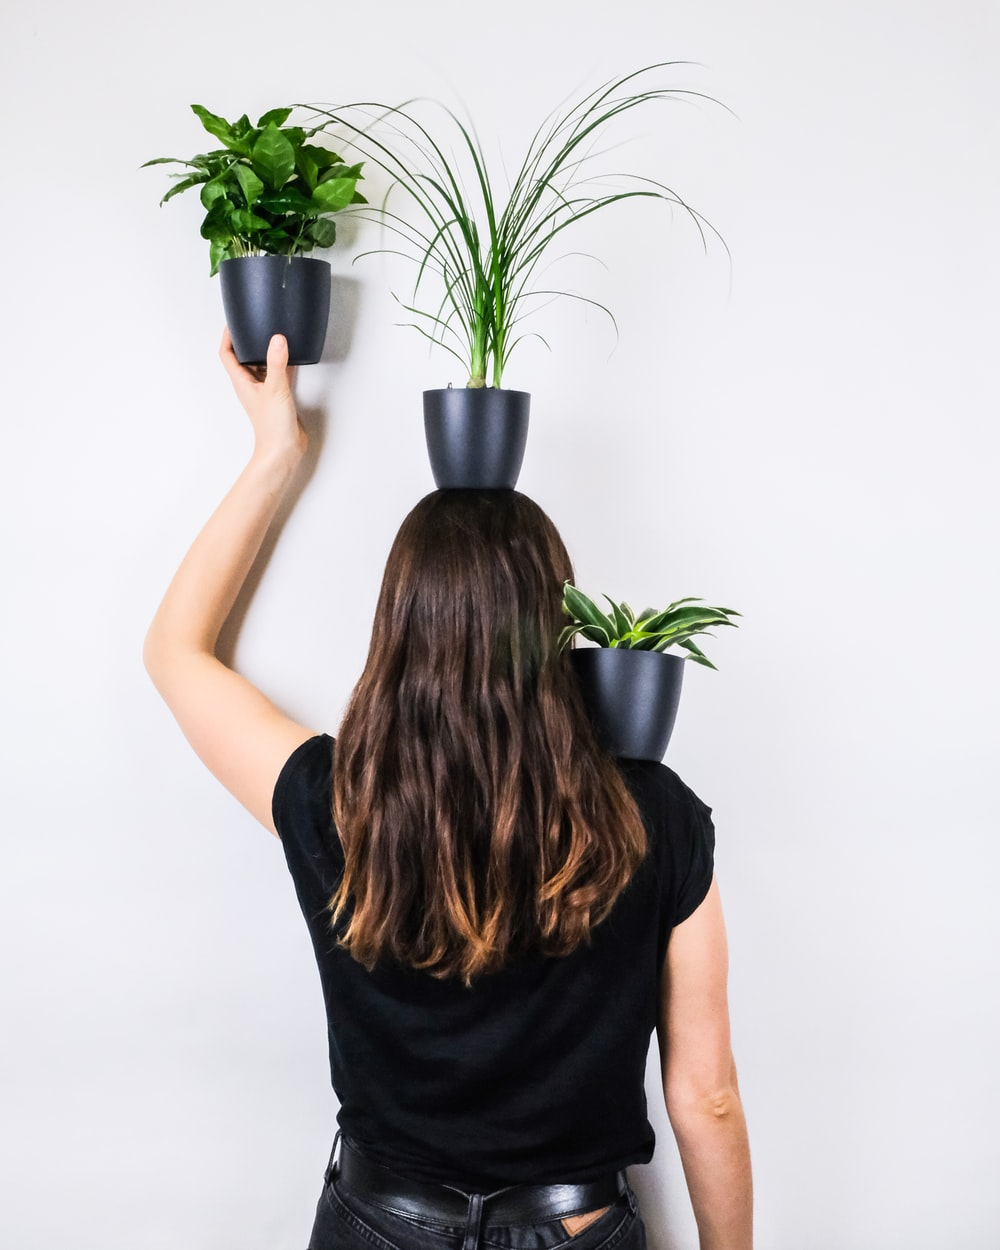 woman in black sleeveless shirt holding green potted plant